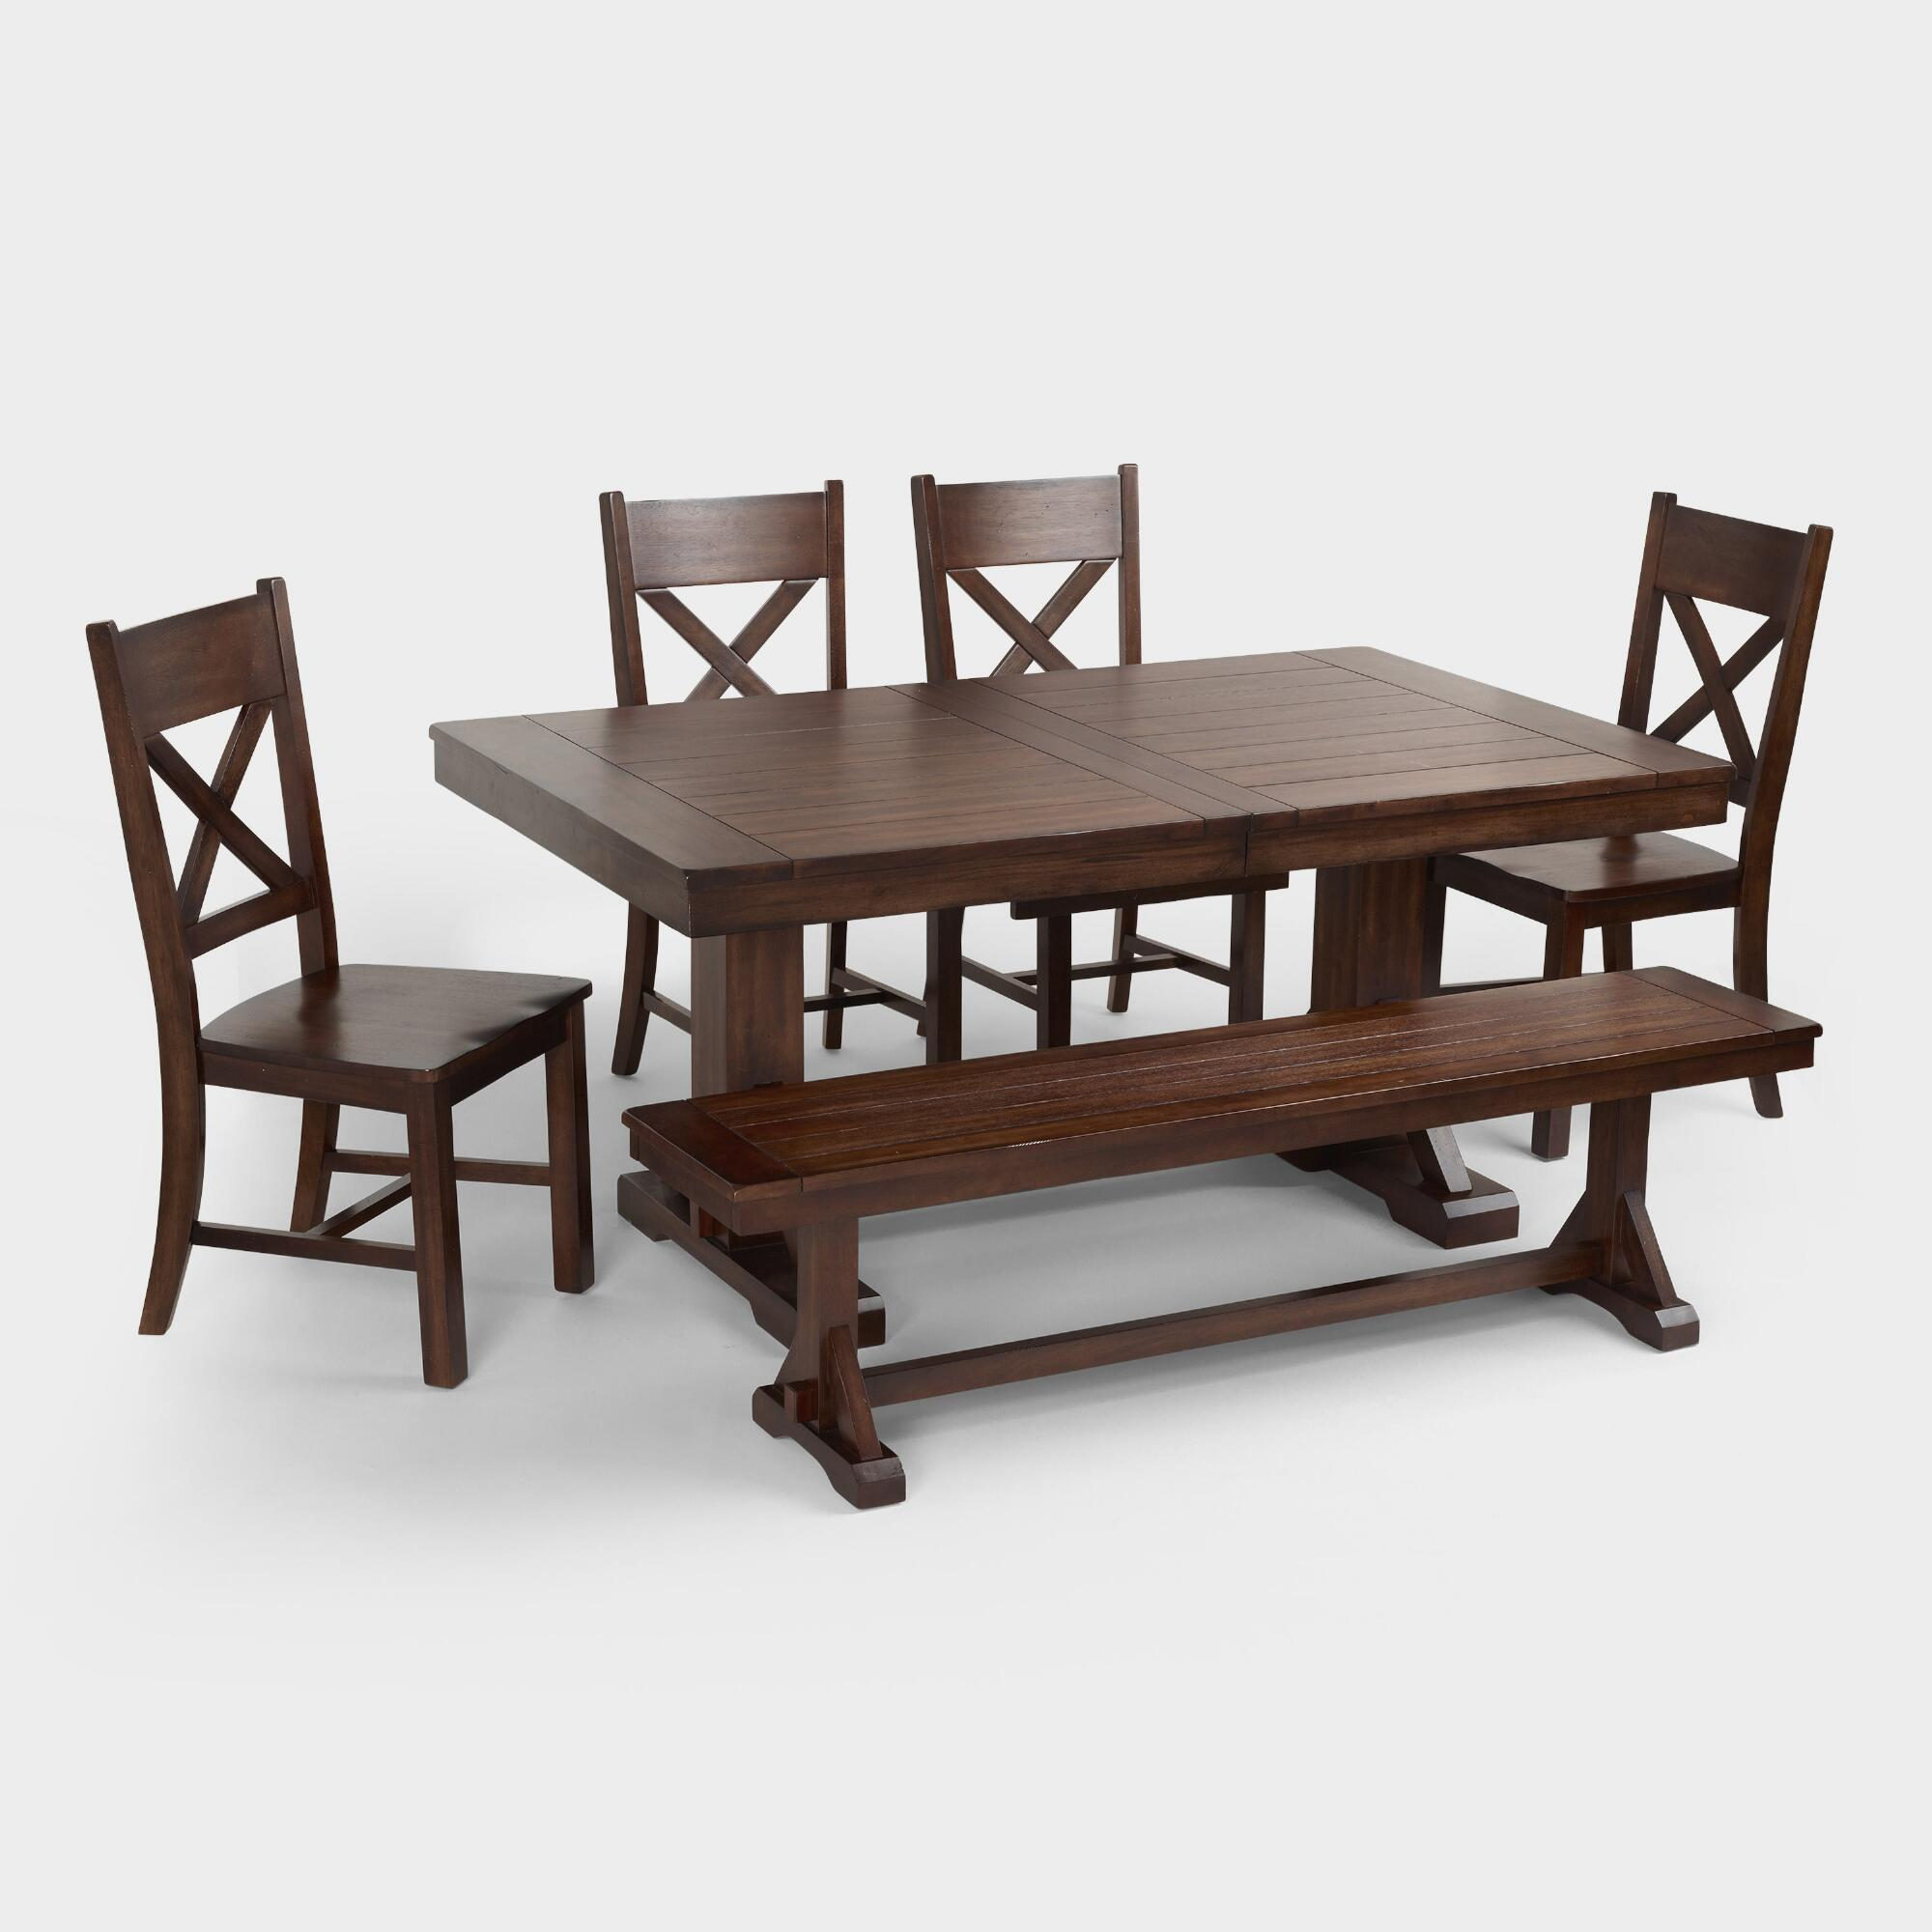 Old World Dining Room Sets Dining World Old World Dining Room Chairs Tuscan Style Dining